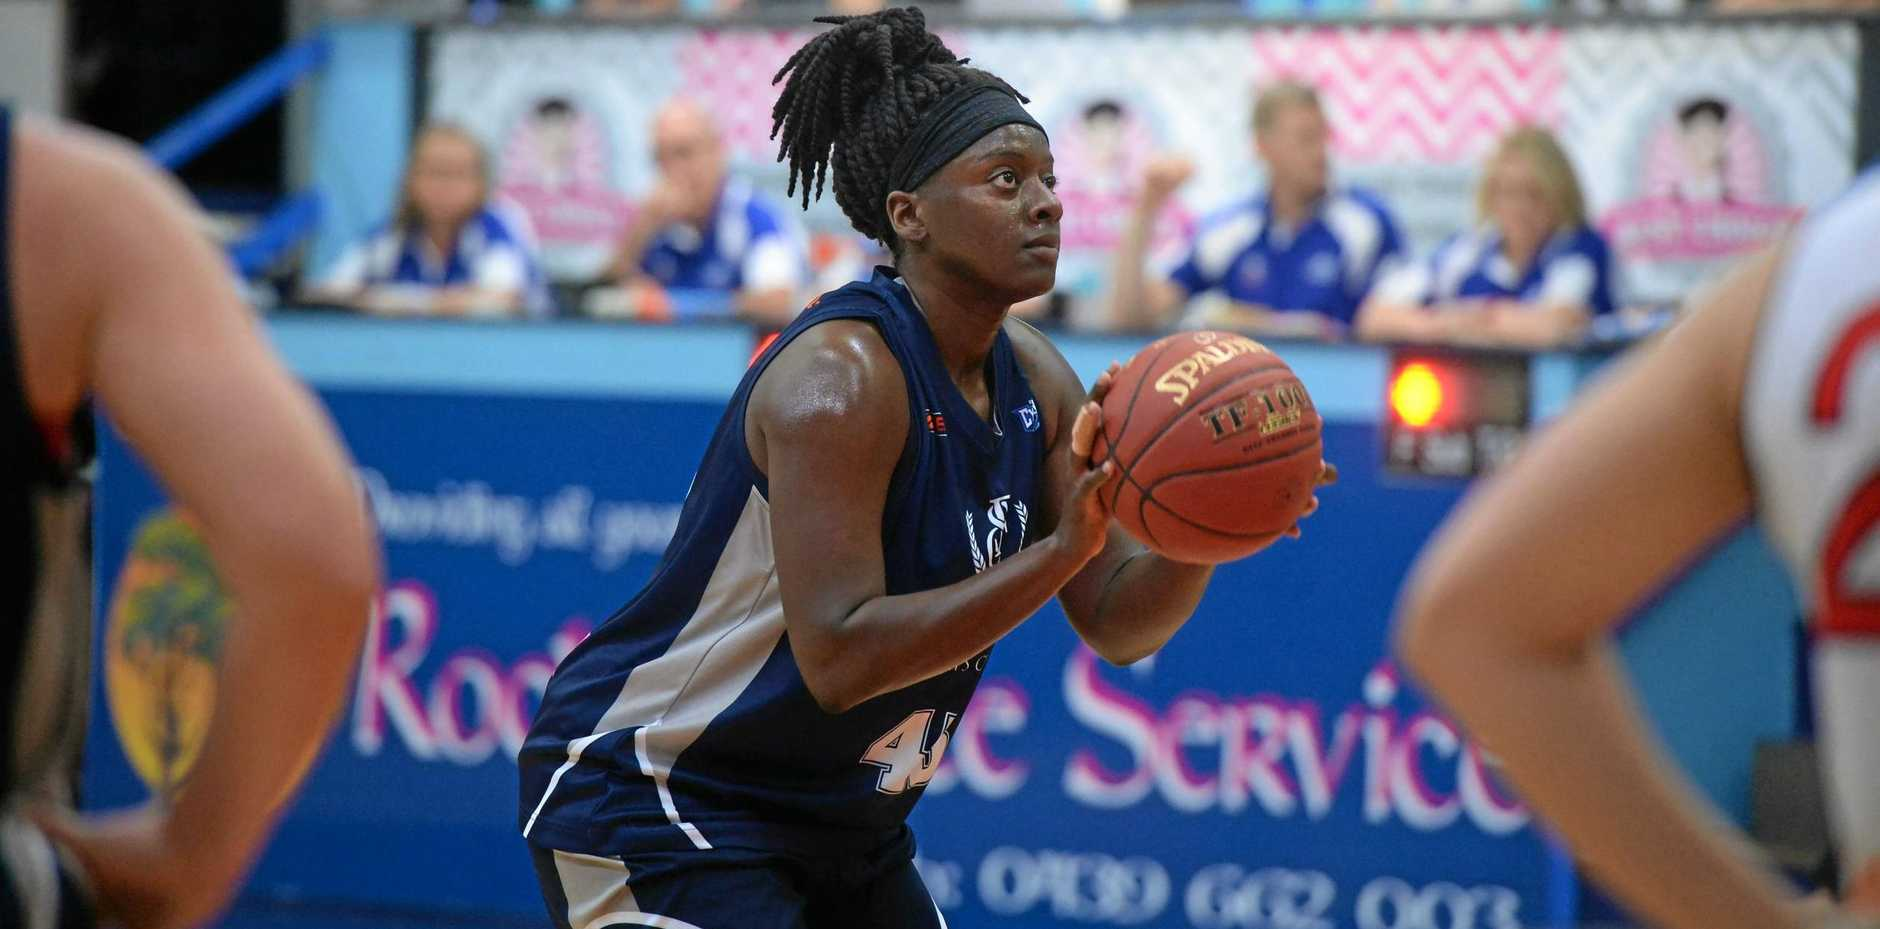 Star centre Shanavia Dowdell played her last home game for the Rockhampton Cyclones on Saturday night.